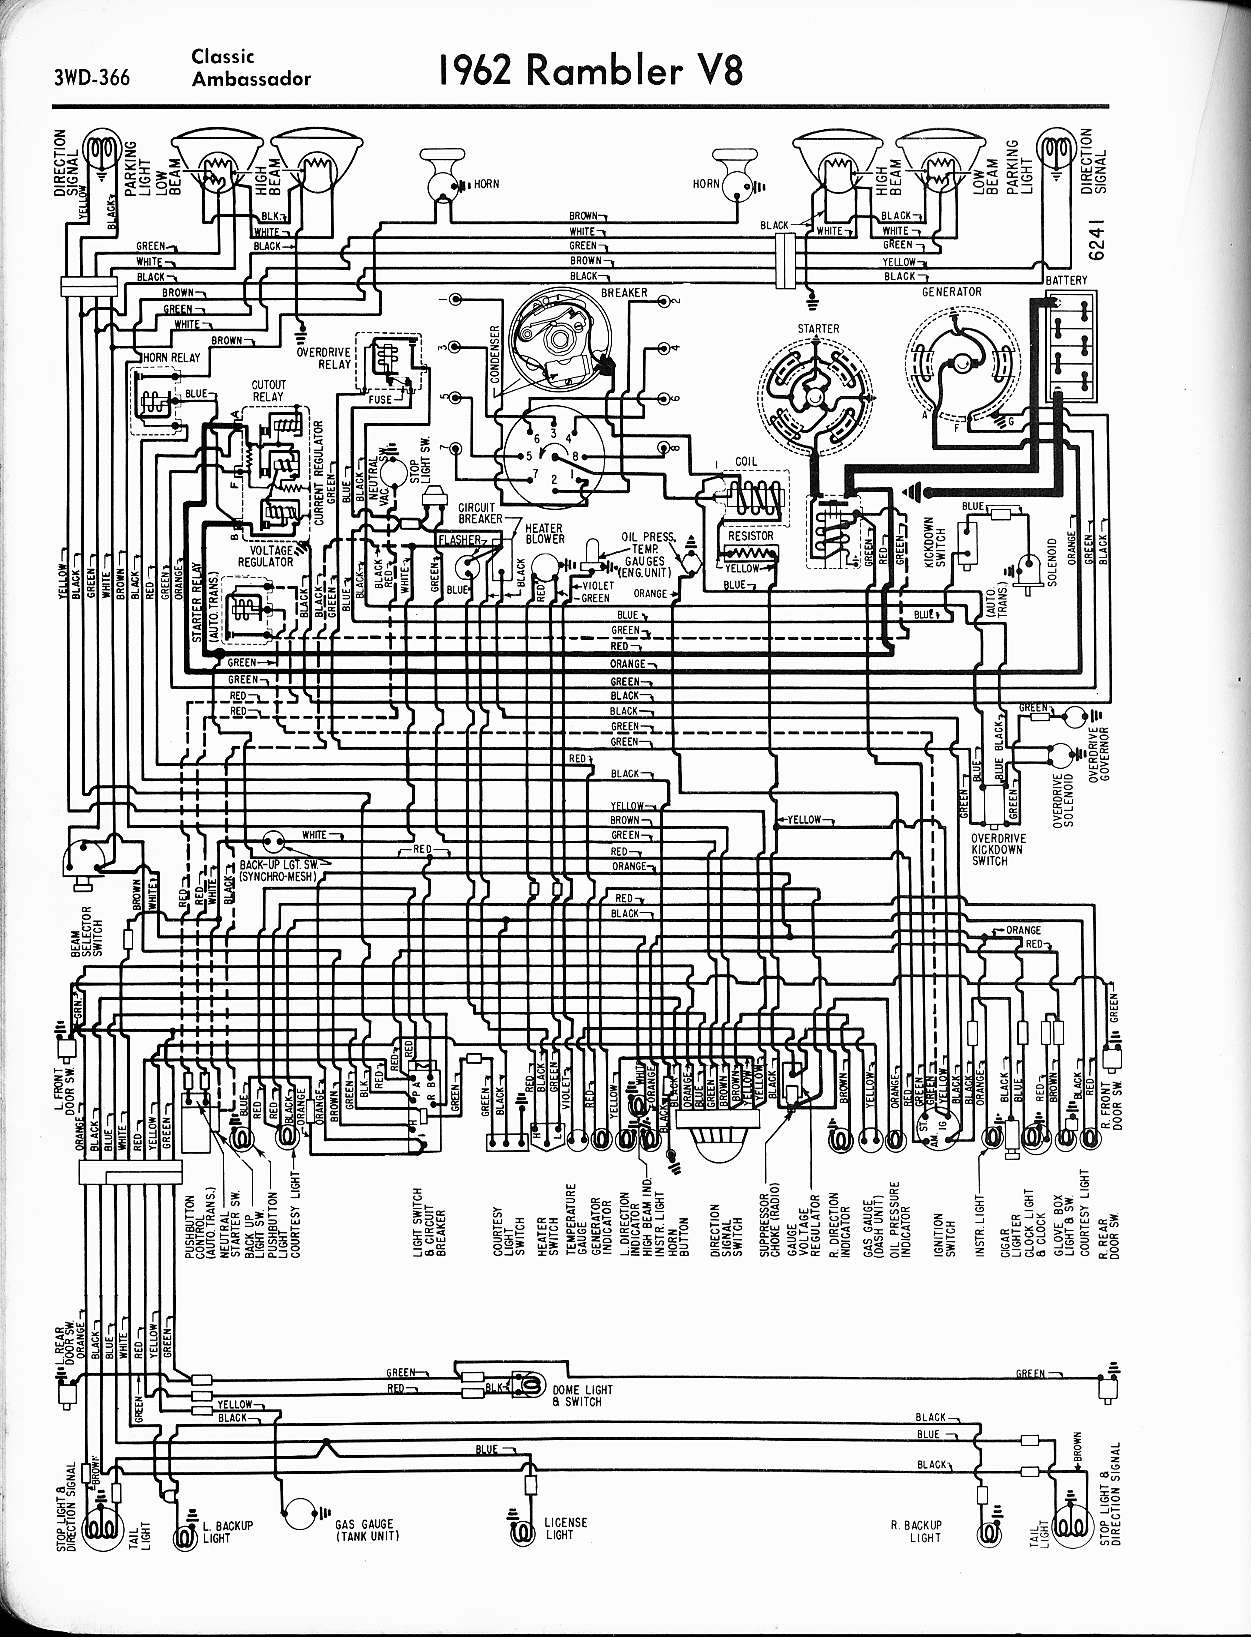 1964 Rambler Classic Wiring Diagram Real 1959 Chrysler 1962 Fuse Box 21 Images 1960 American